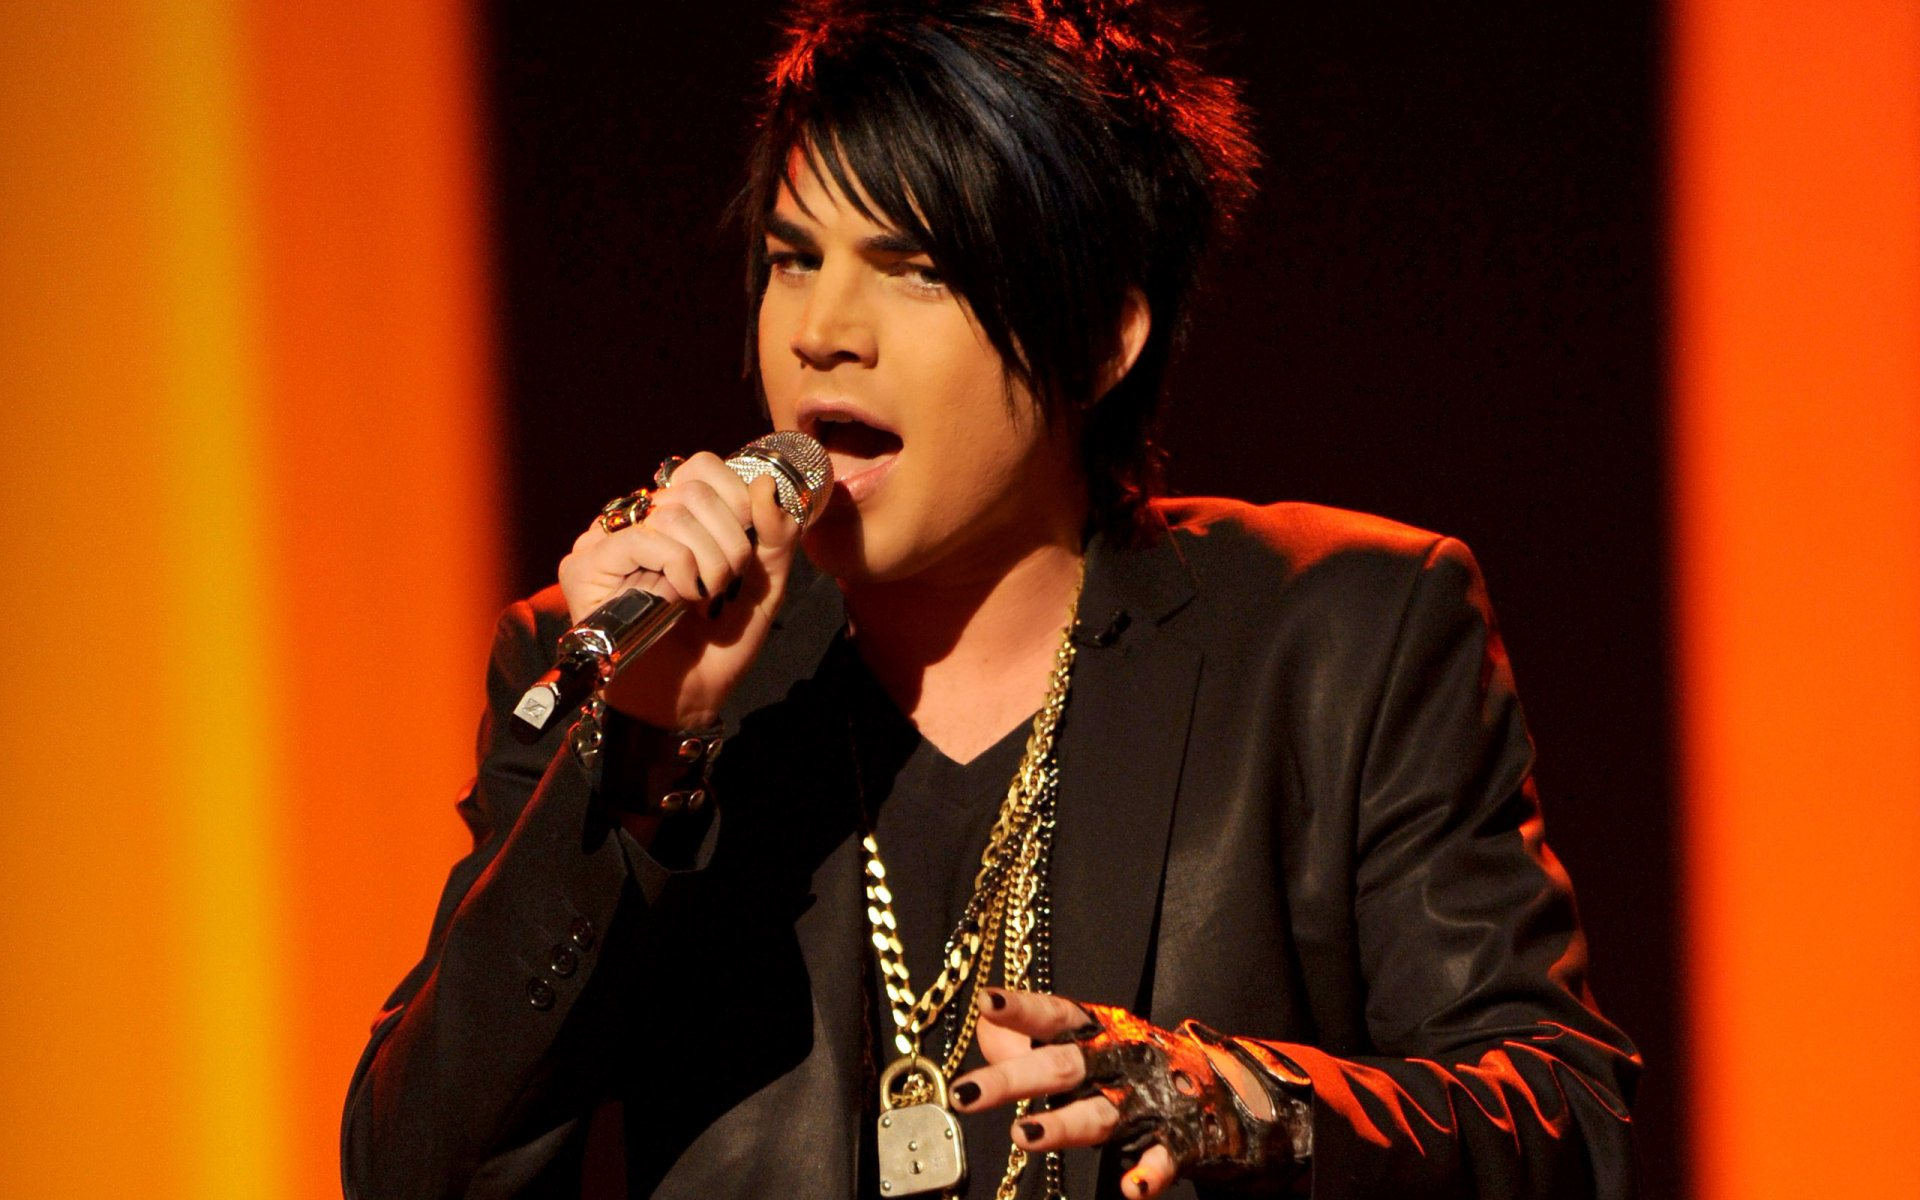 adam lambert wallpaper background